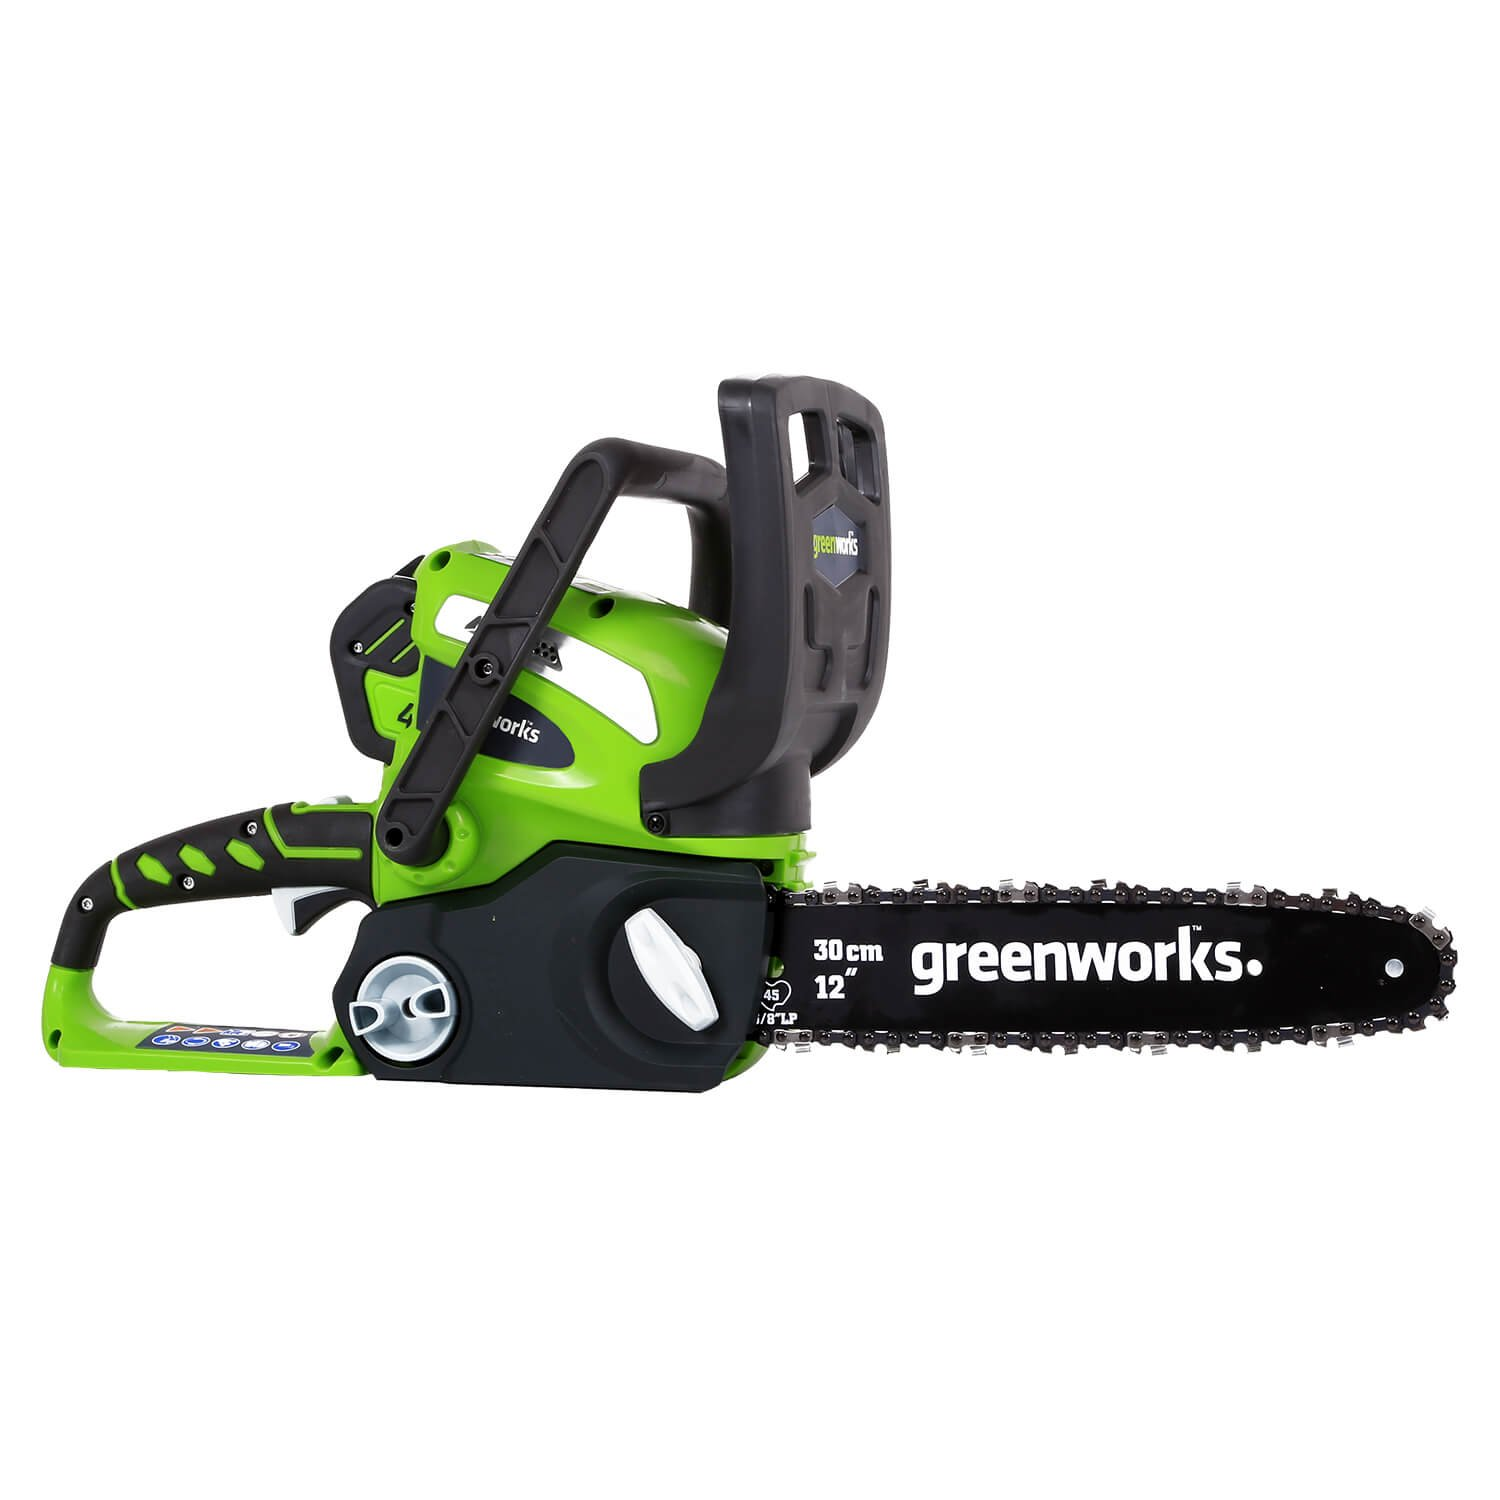 Greenworks 20262 Chainsaws product image 2